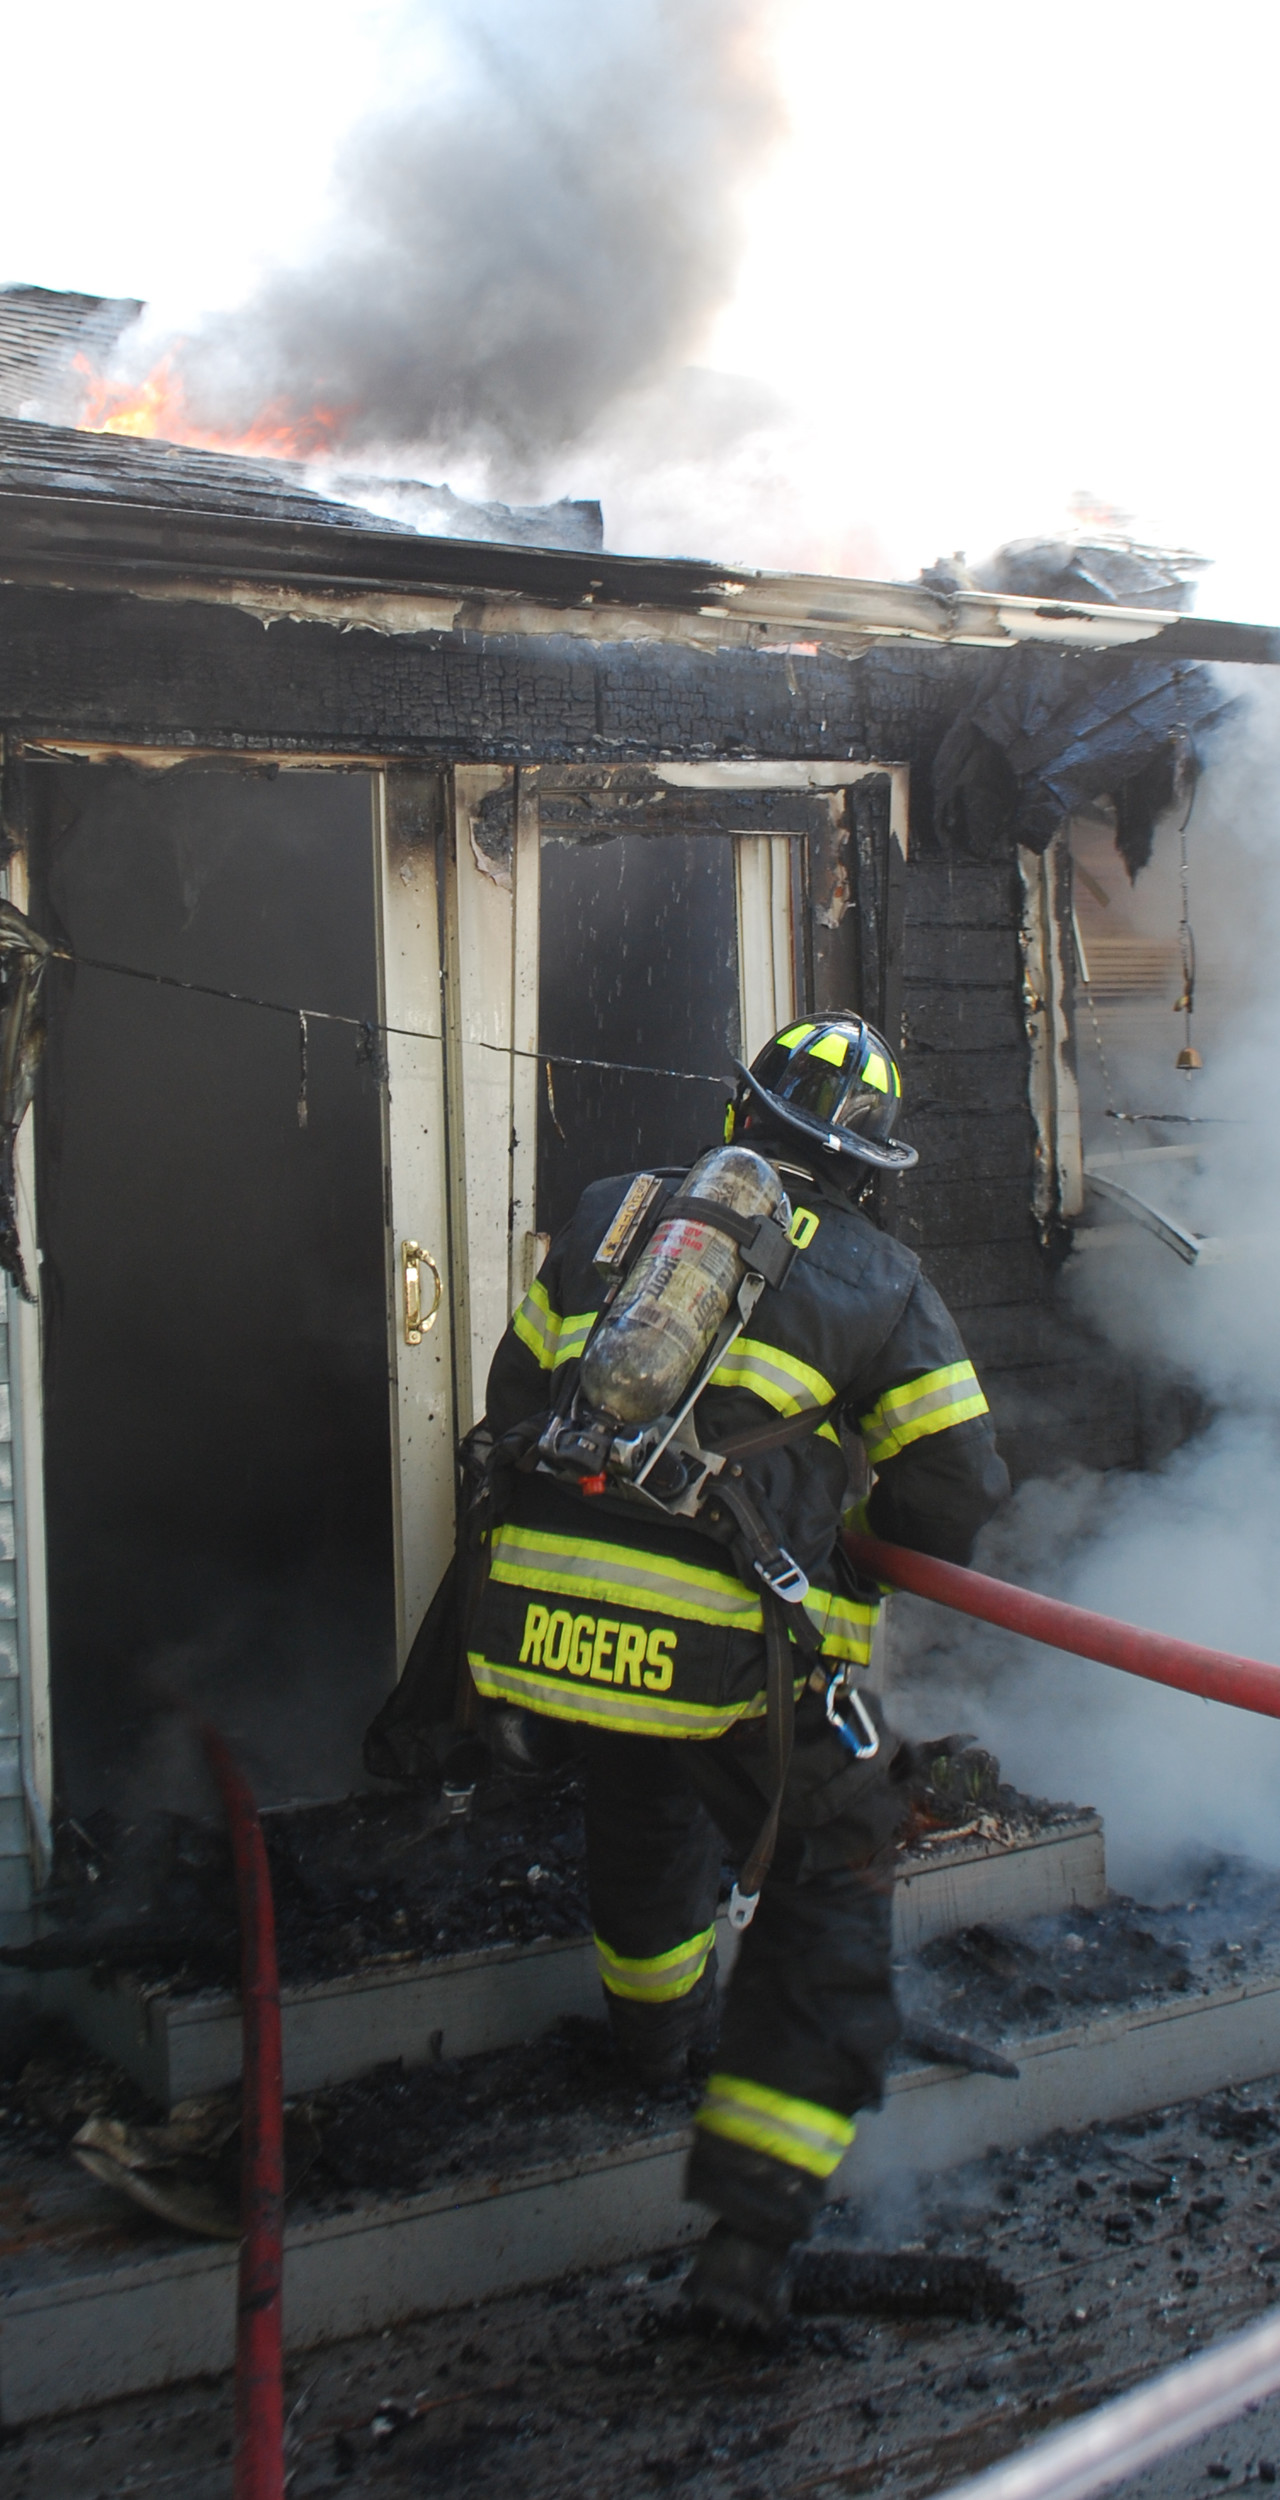 James Rogers, of the North Merrick Fire Department, fed a hose through the back of the Cosentinos' house to extinguish the flames.